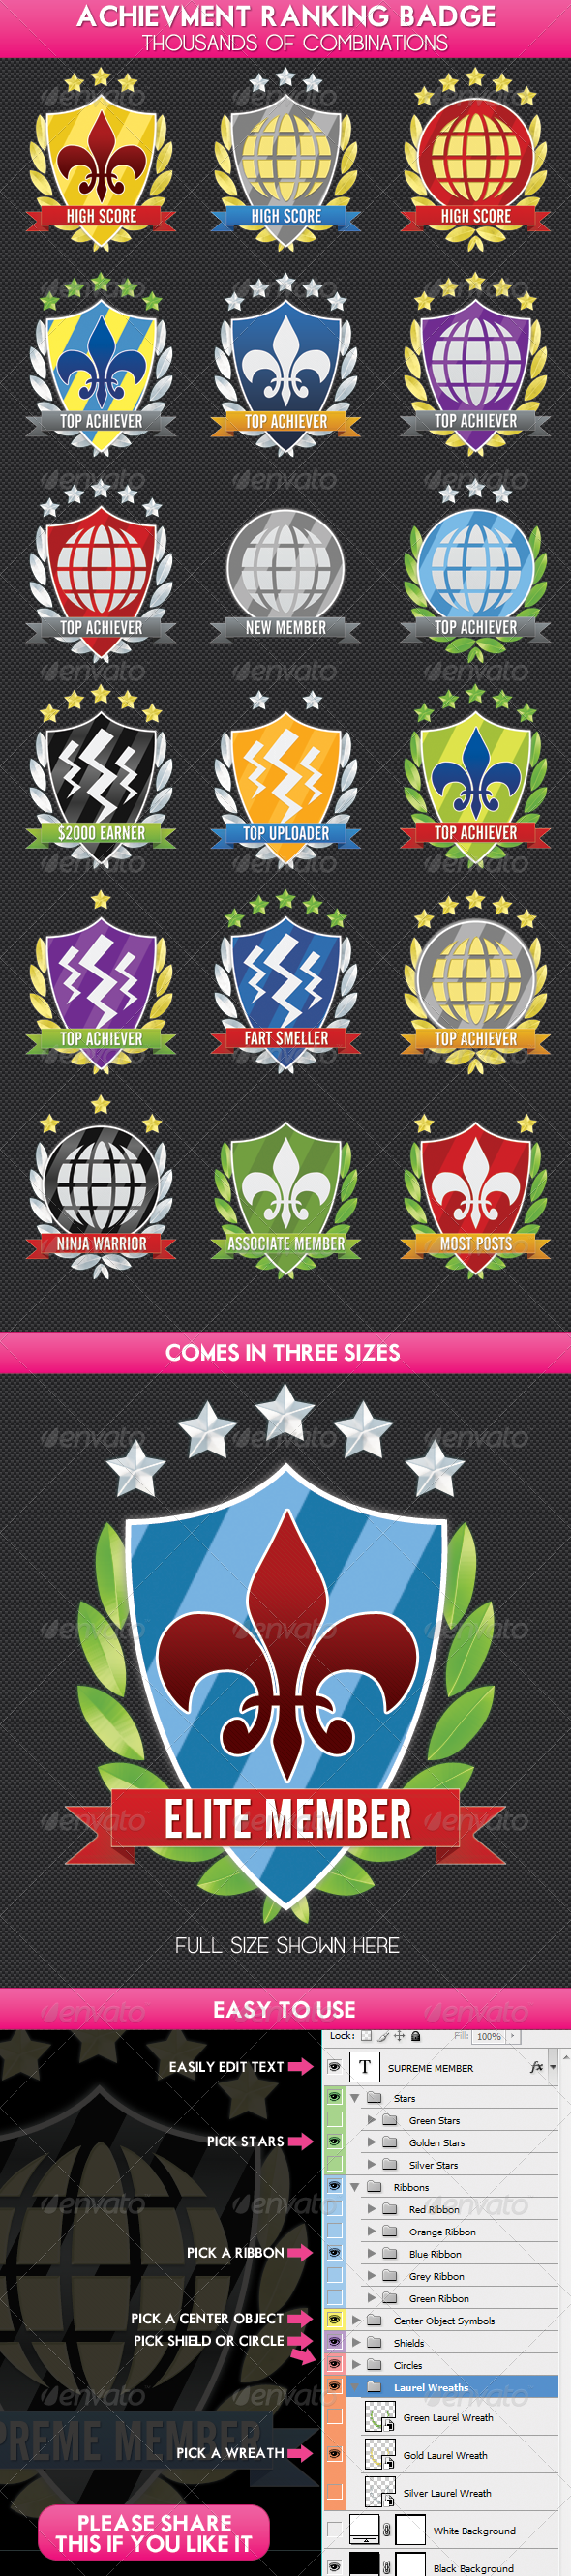 Achievment, Ranking, Experience Shield Award Badge - Badges &amp; Stickers Web Elements